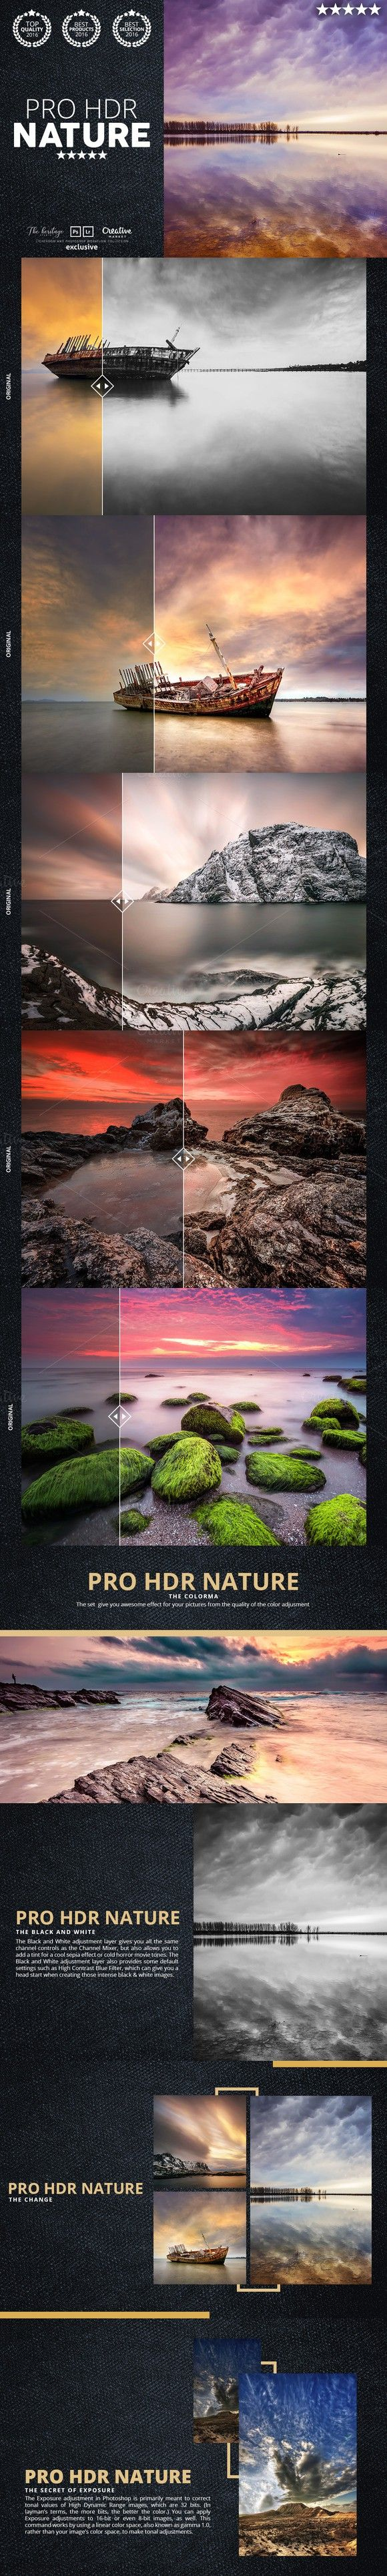 Pro HDR Nature 60 Lightroom Presets. Actions. $25.00